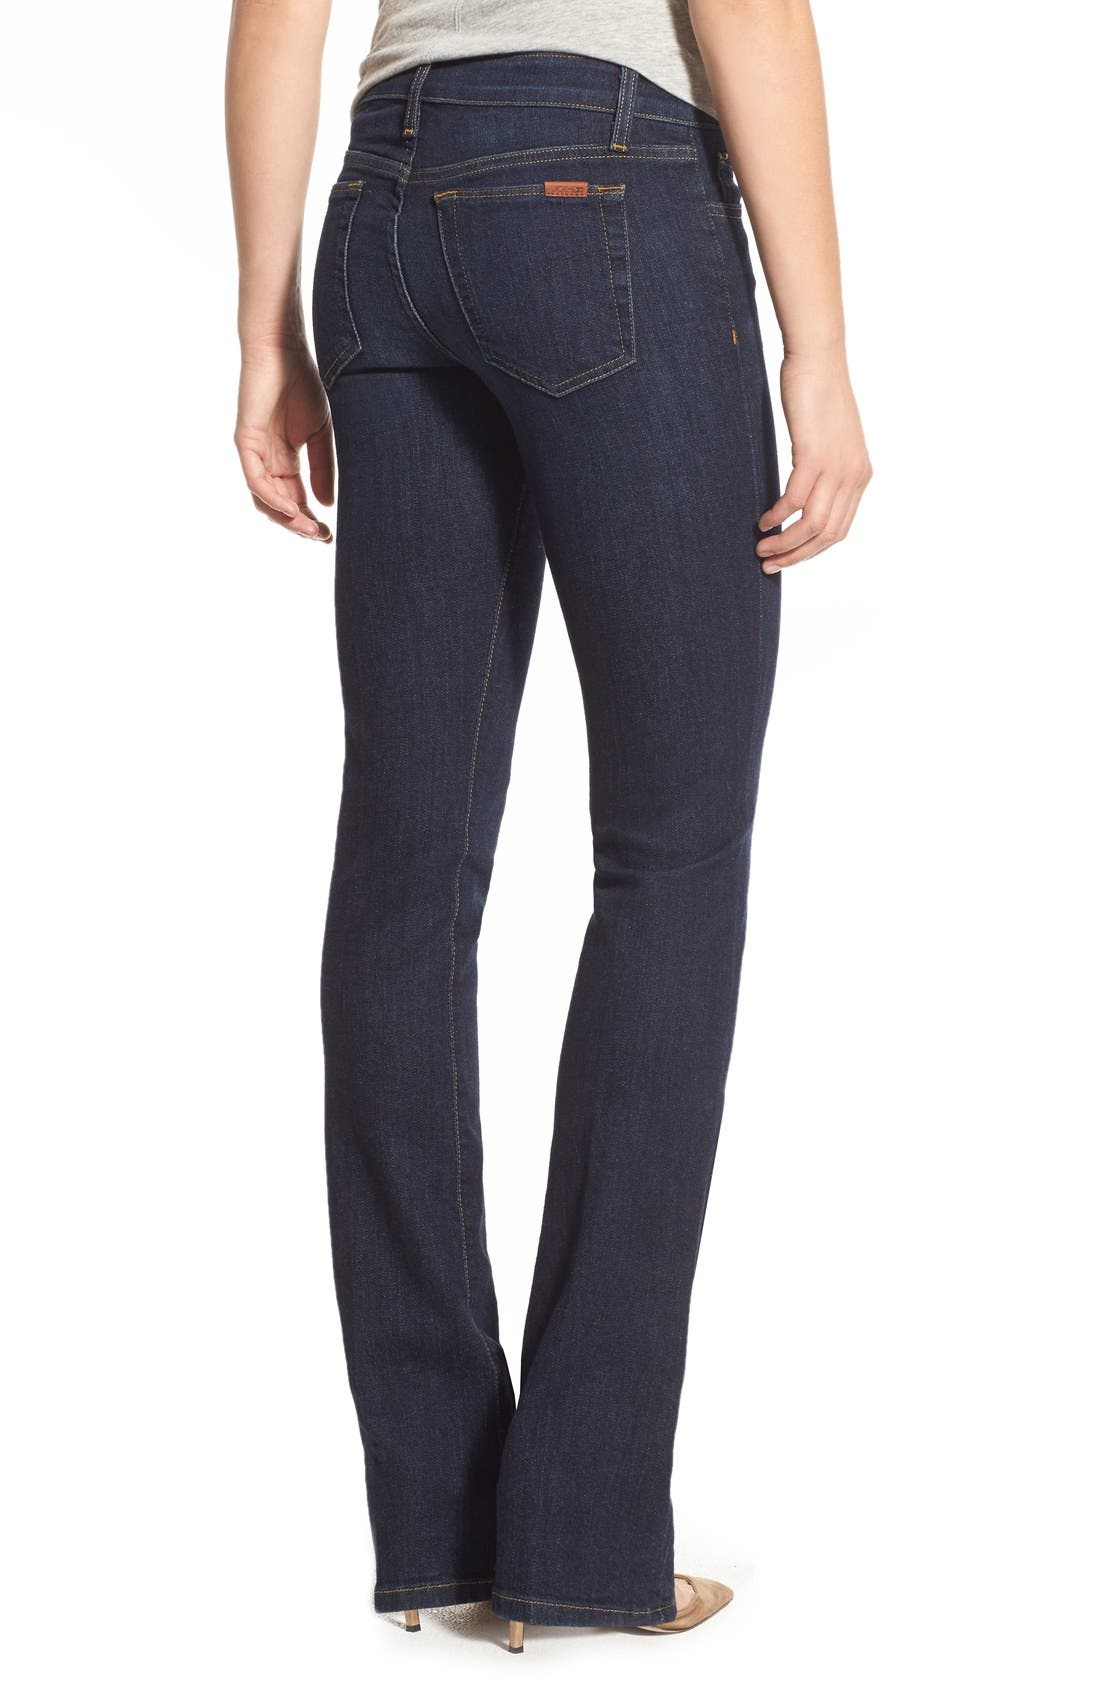 Honey Curvy Bootcut Jeans,                             Alternate thumbnail 2, color,                             RIKKI